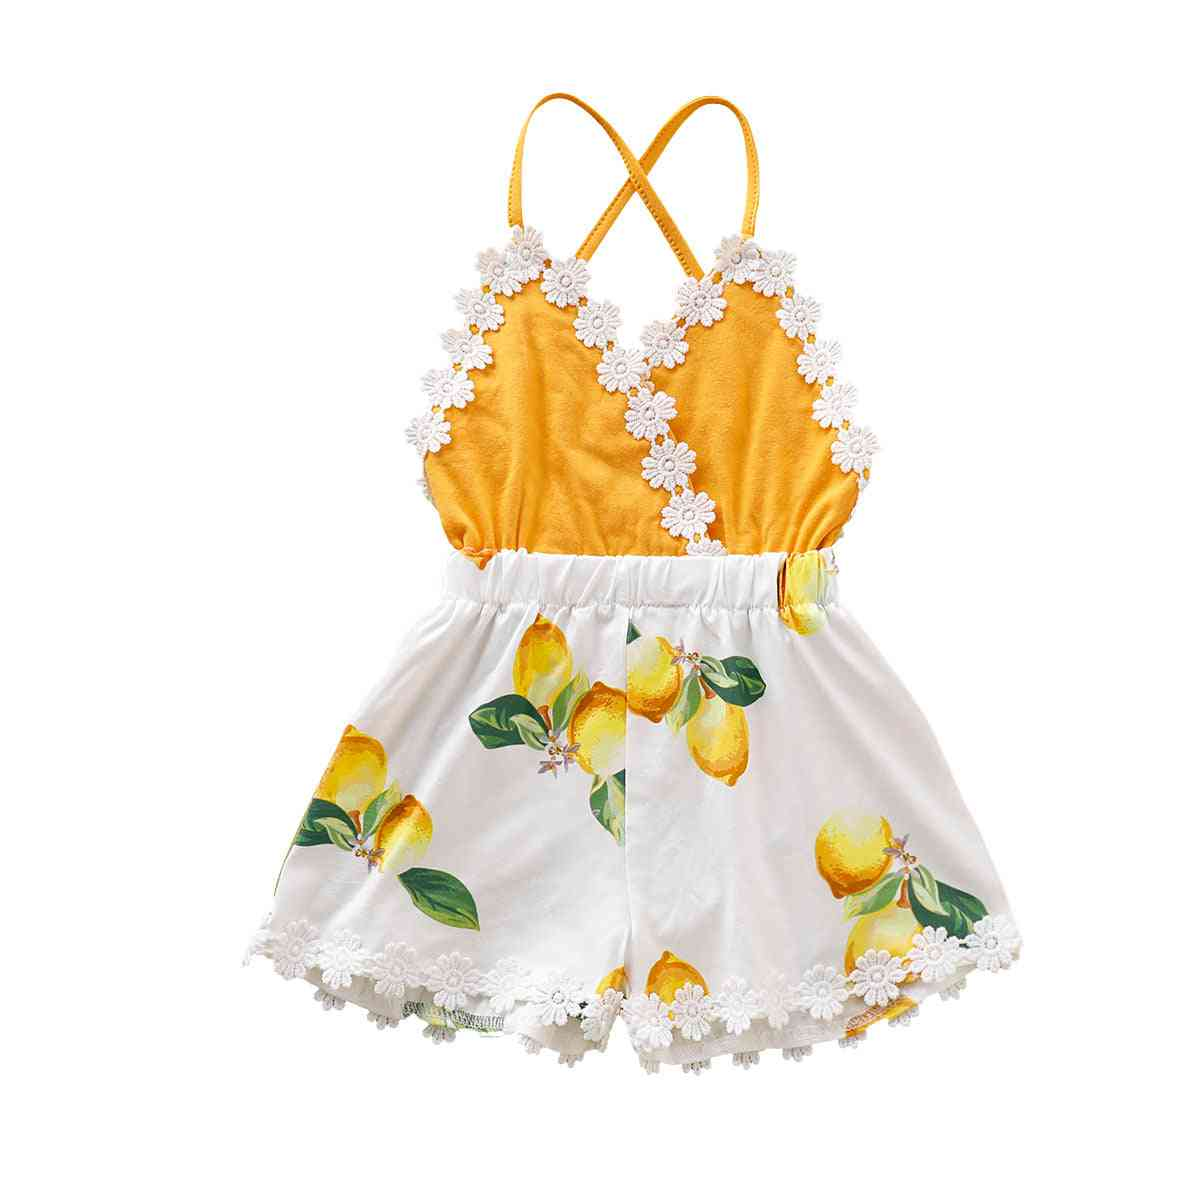 Baby Girl Tassel Backless Lace Patchwork Lemon Printed Fashion Clothes Sunsuit Outfits